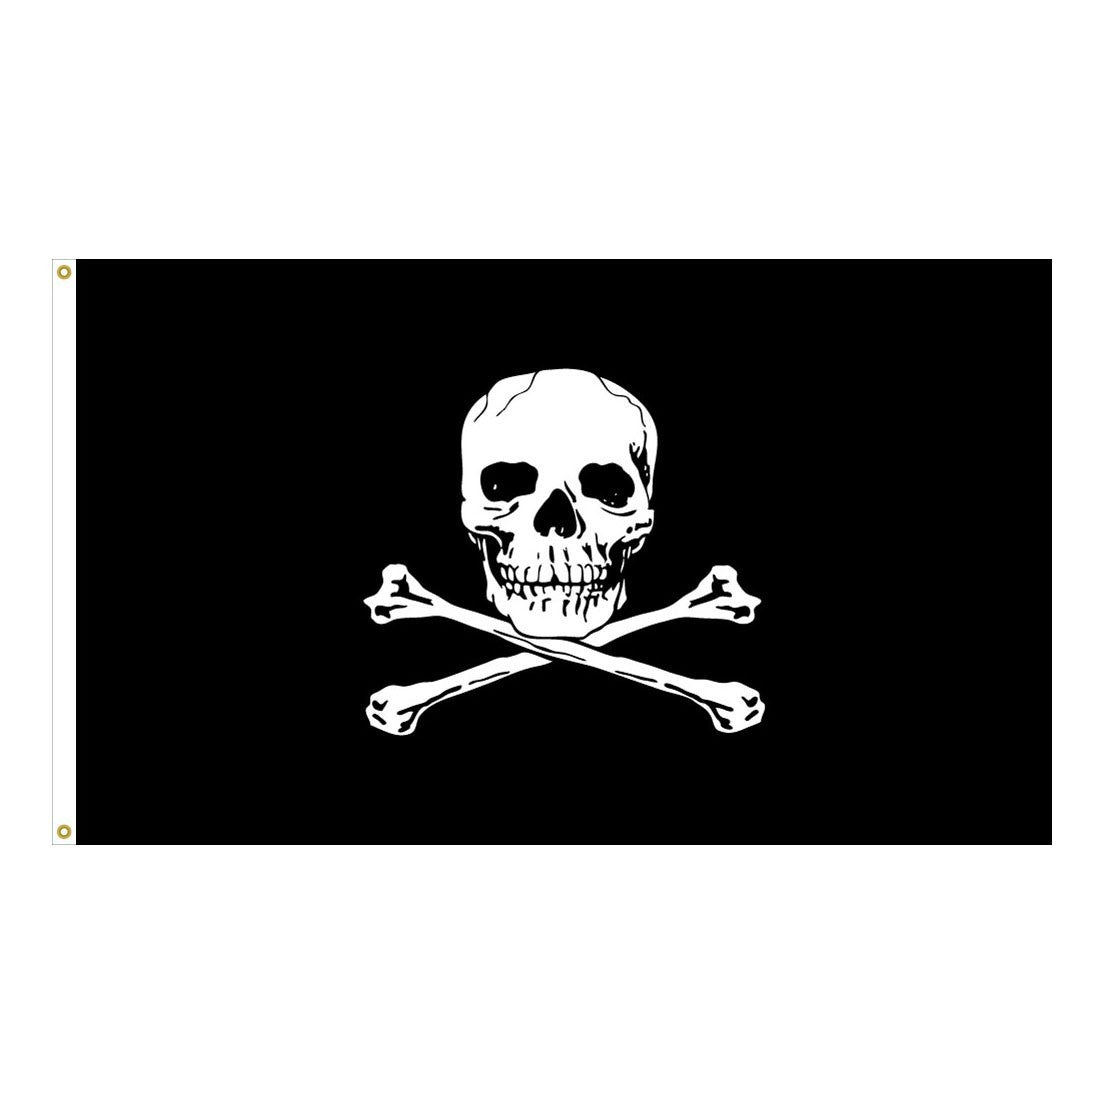 Jolly Roger-Pirate 5' x 8' Outdoor High Quality Flag